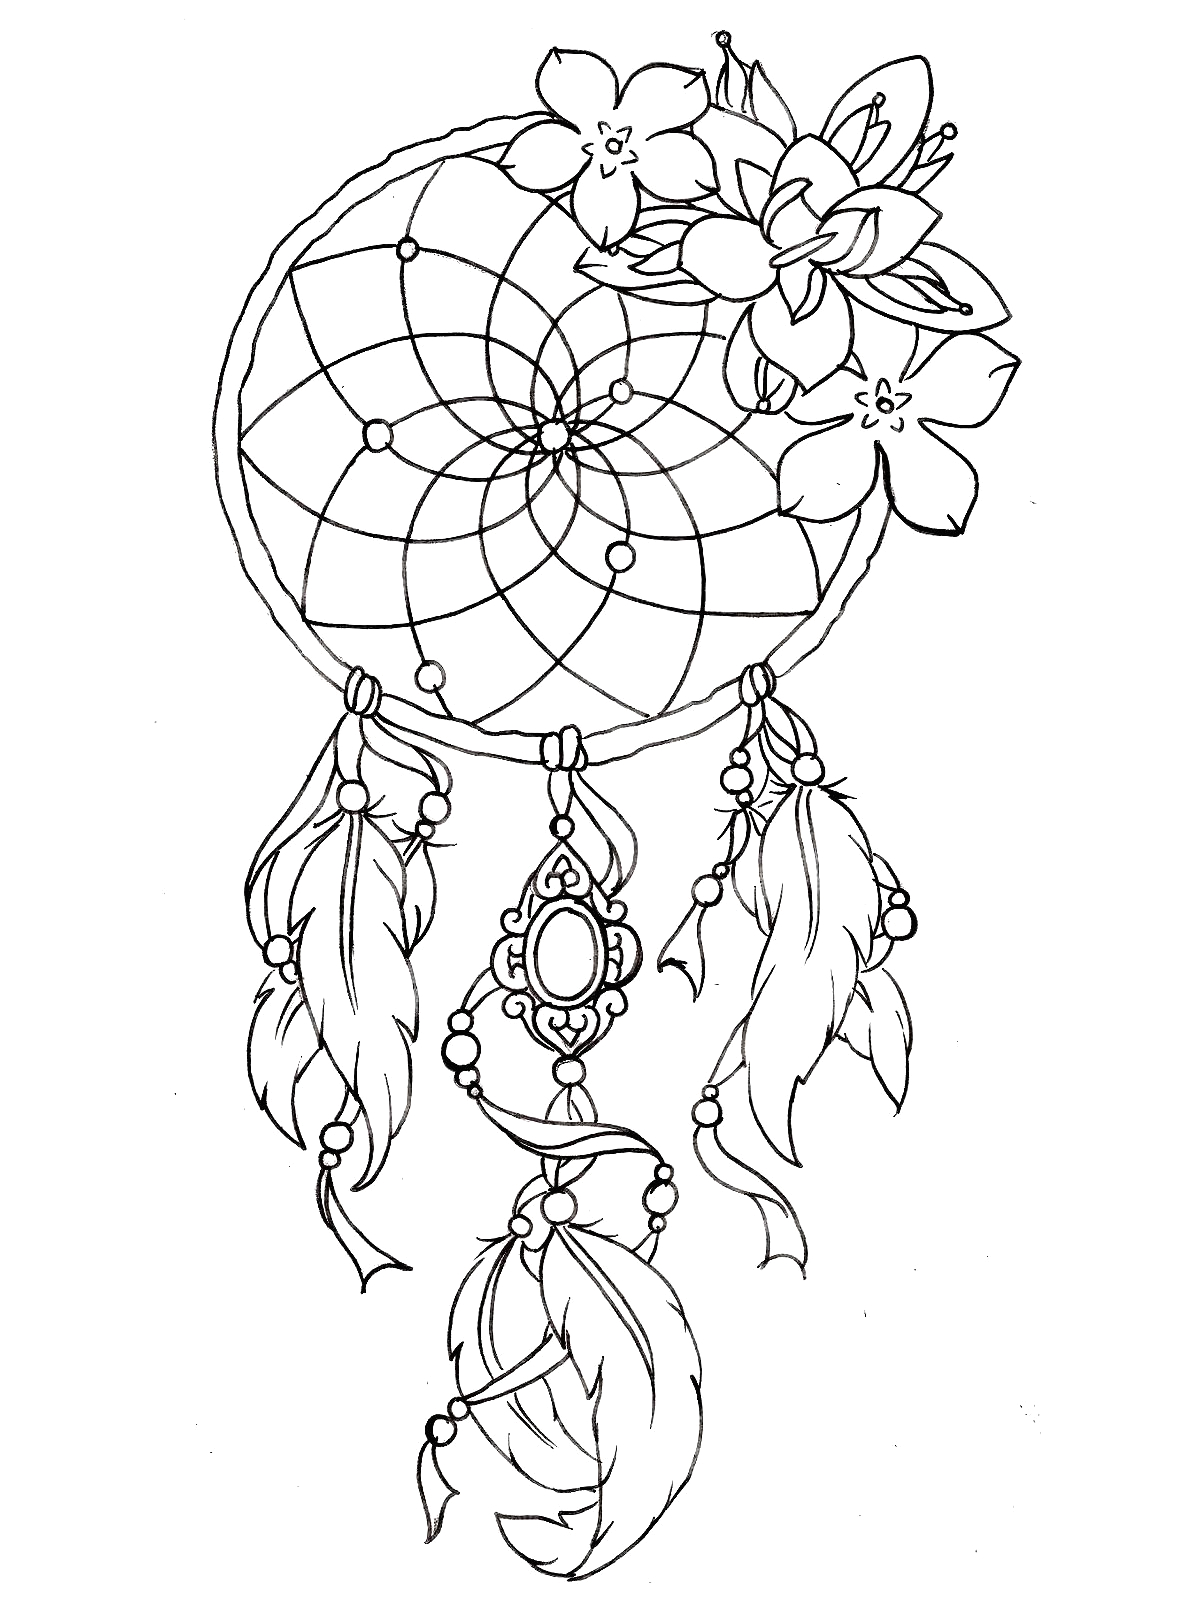 Tattoo Design Tattoo Coloring Pages for Adults Dreamcatcher Tattoo Designs Tattoos Adult Coloring Pages